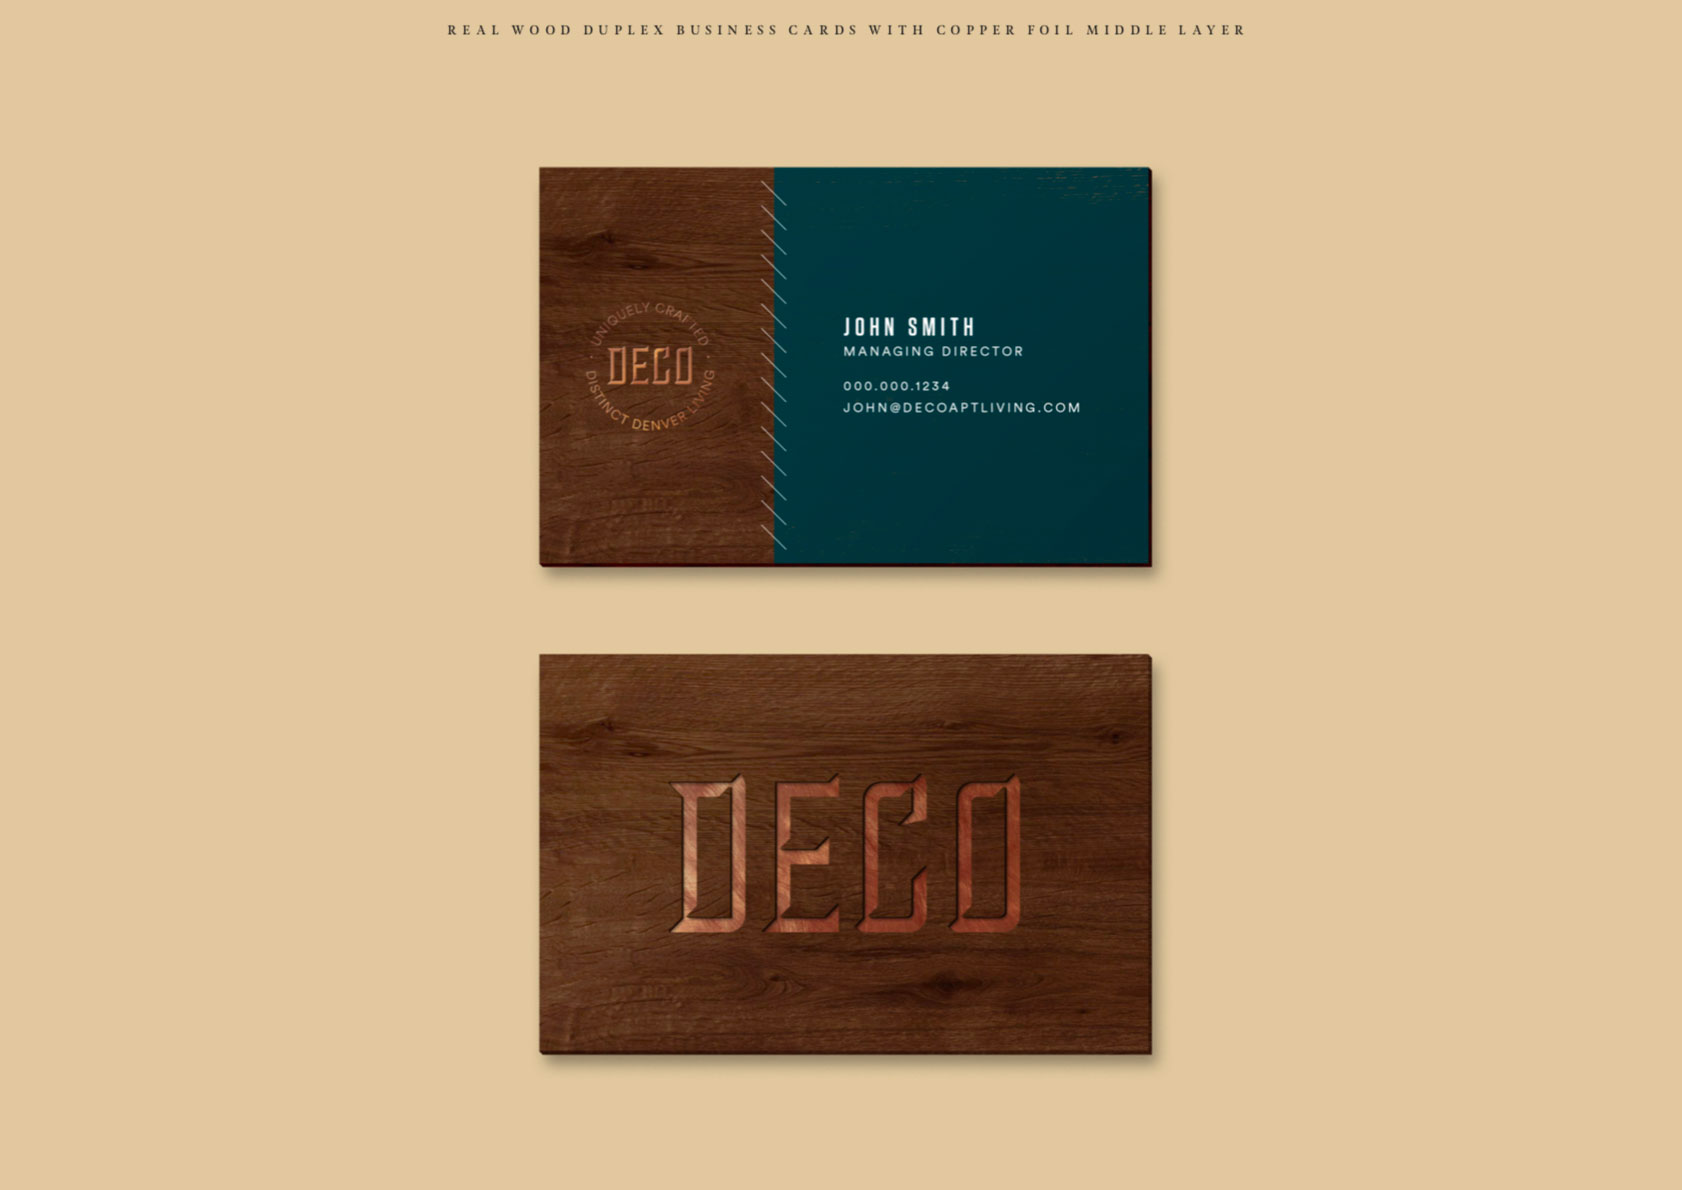 apartment-logo-branding-business-cards-uncomn-projects